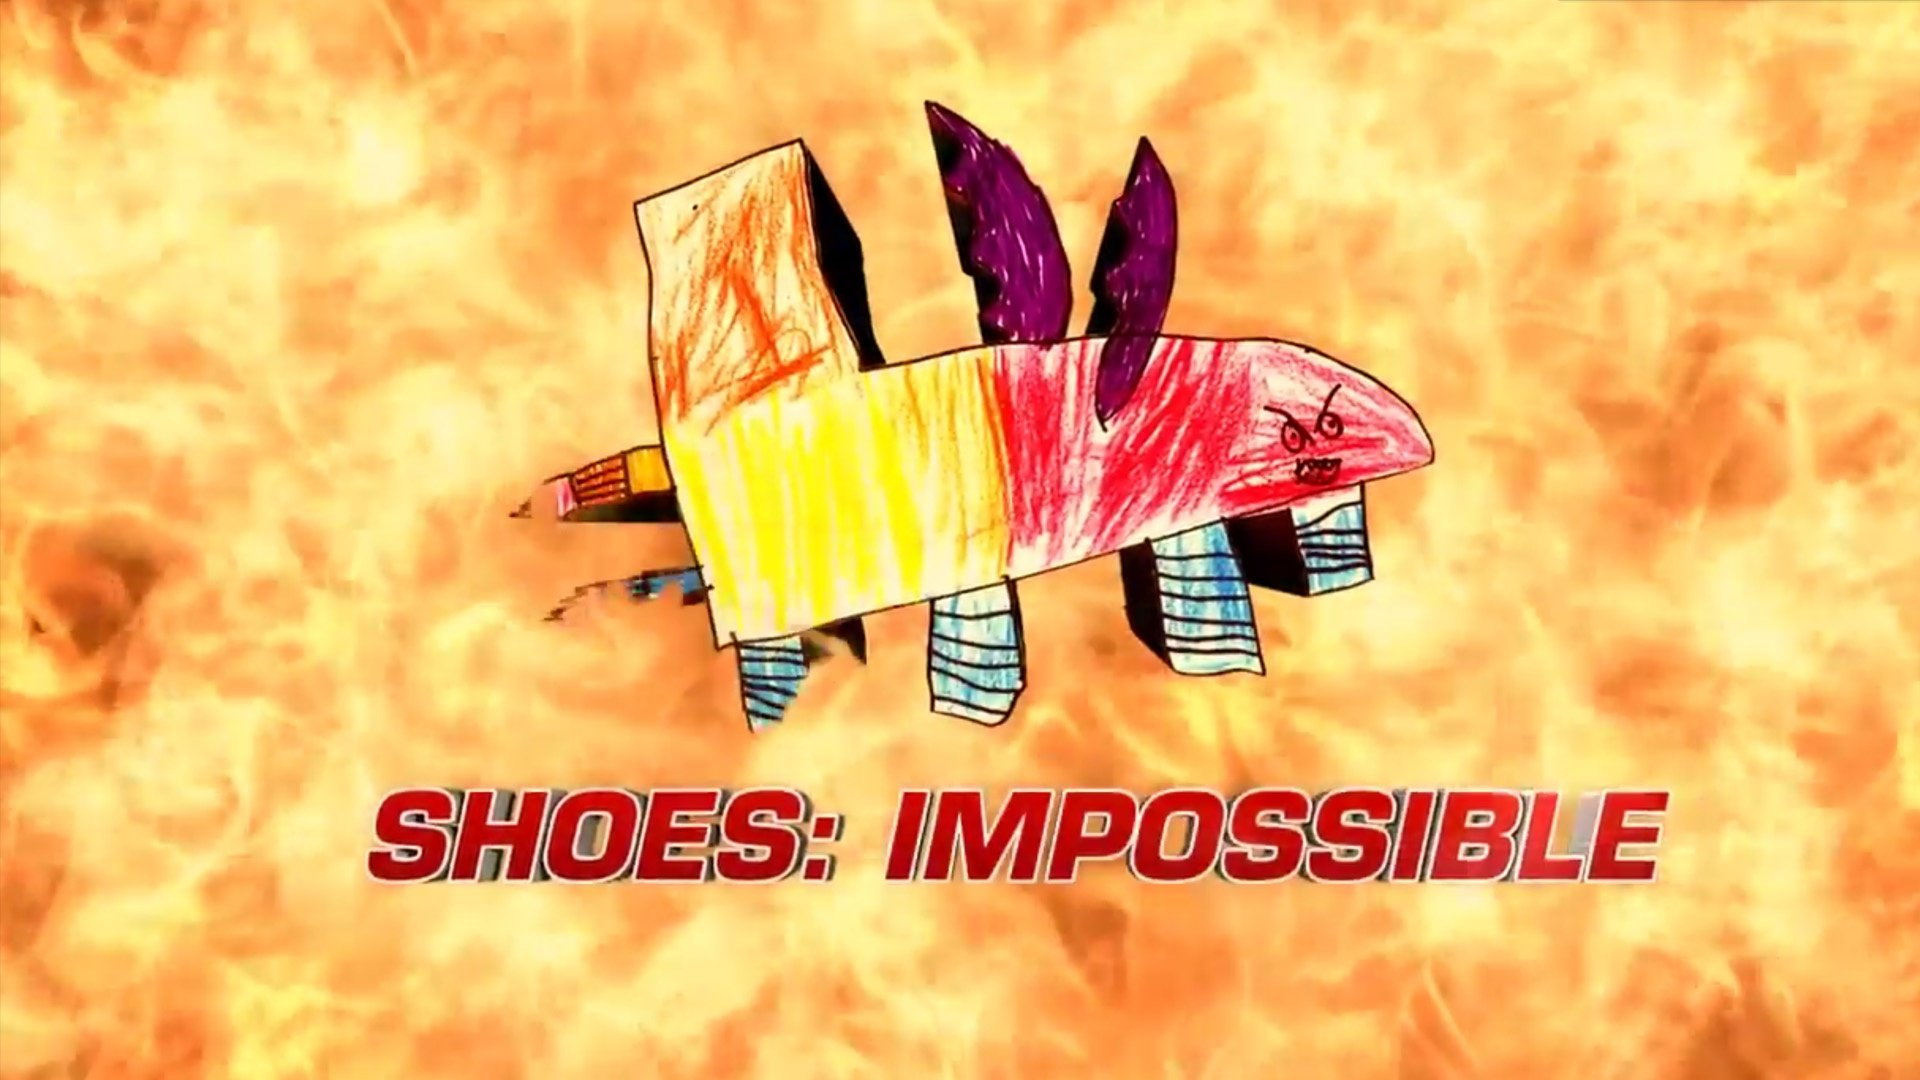 Social media case history_shoes_impossible.jpg